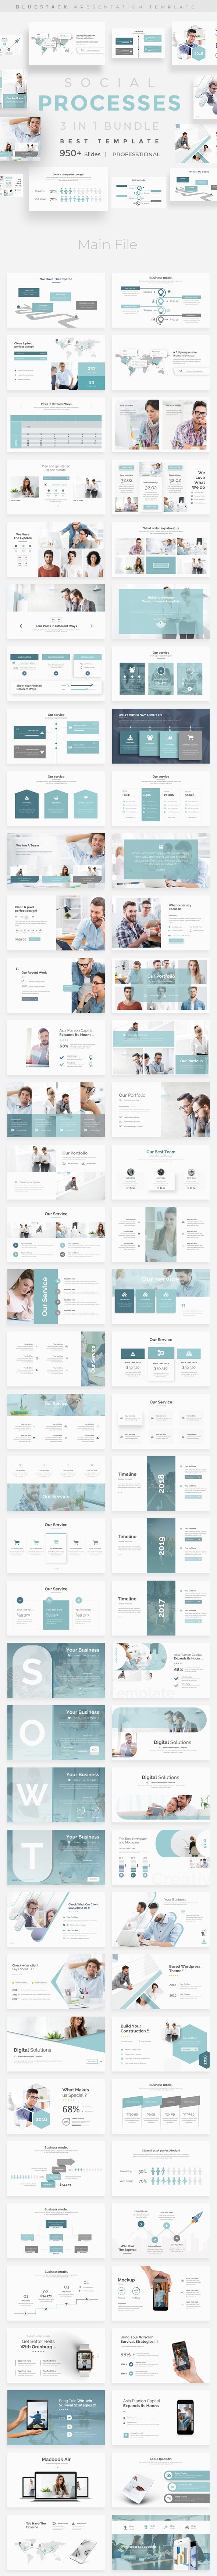 Social Processes 3 in 1 Pitch Deck Bundle Keynote Template - Business Keynote Templates